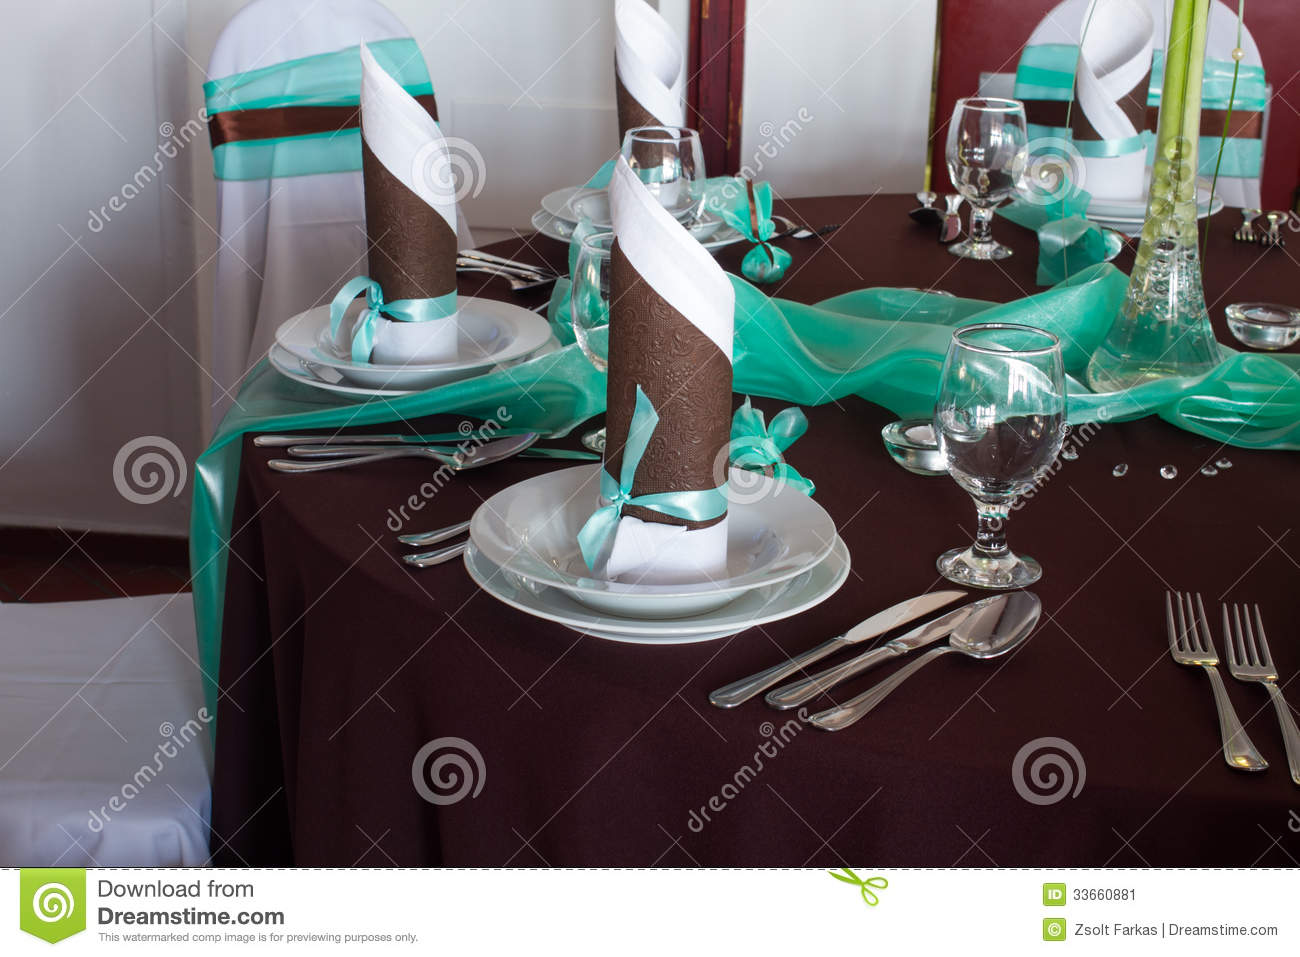 Wedding Table Set With Decoration For Fine Dining Or  : wedding table set decoration fine dining another catered event decorations turquoise brown colour napkin 33660881 from www.dreamstime.com size 1300 x 957 jpeg 142kB